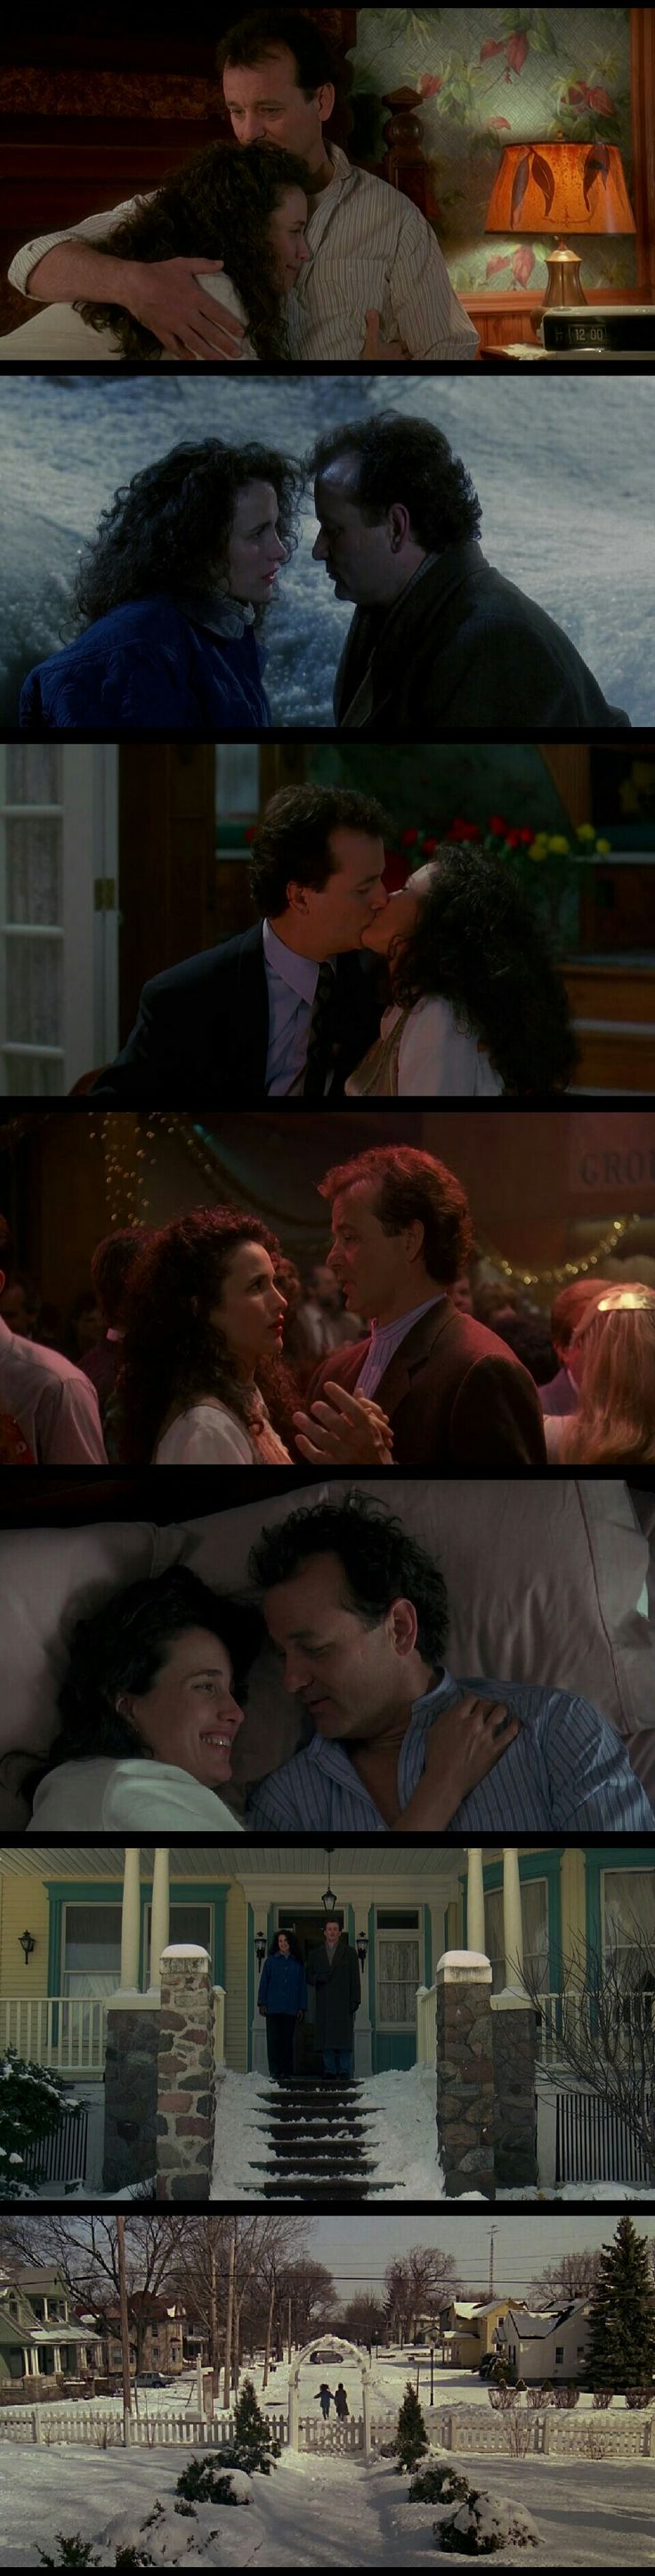 Bill Murray and Andie MacDowell in Groundhog Day(1993)